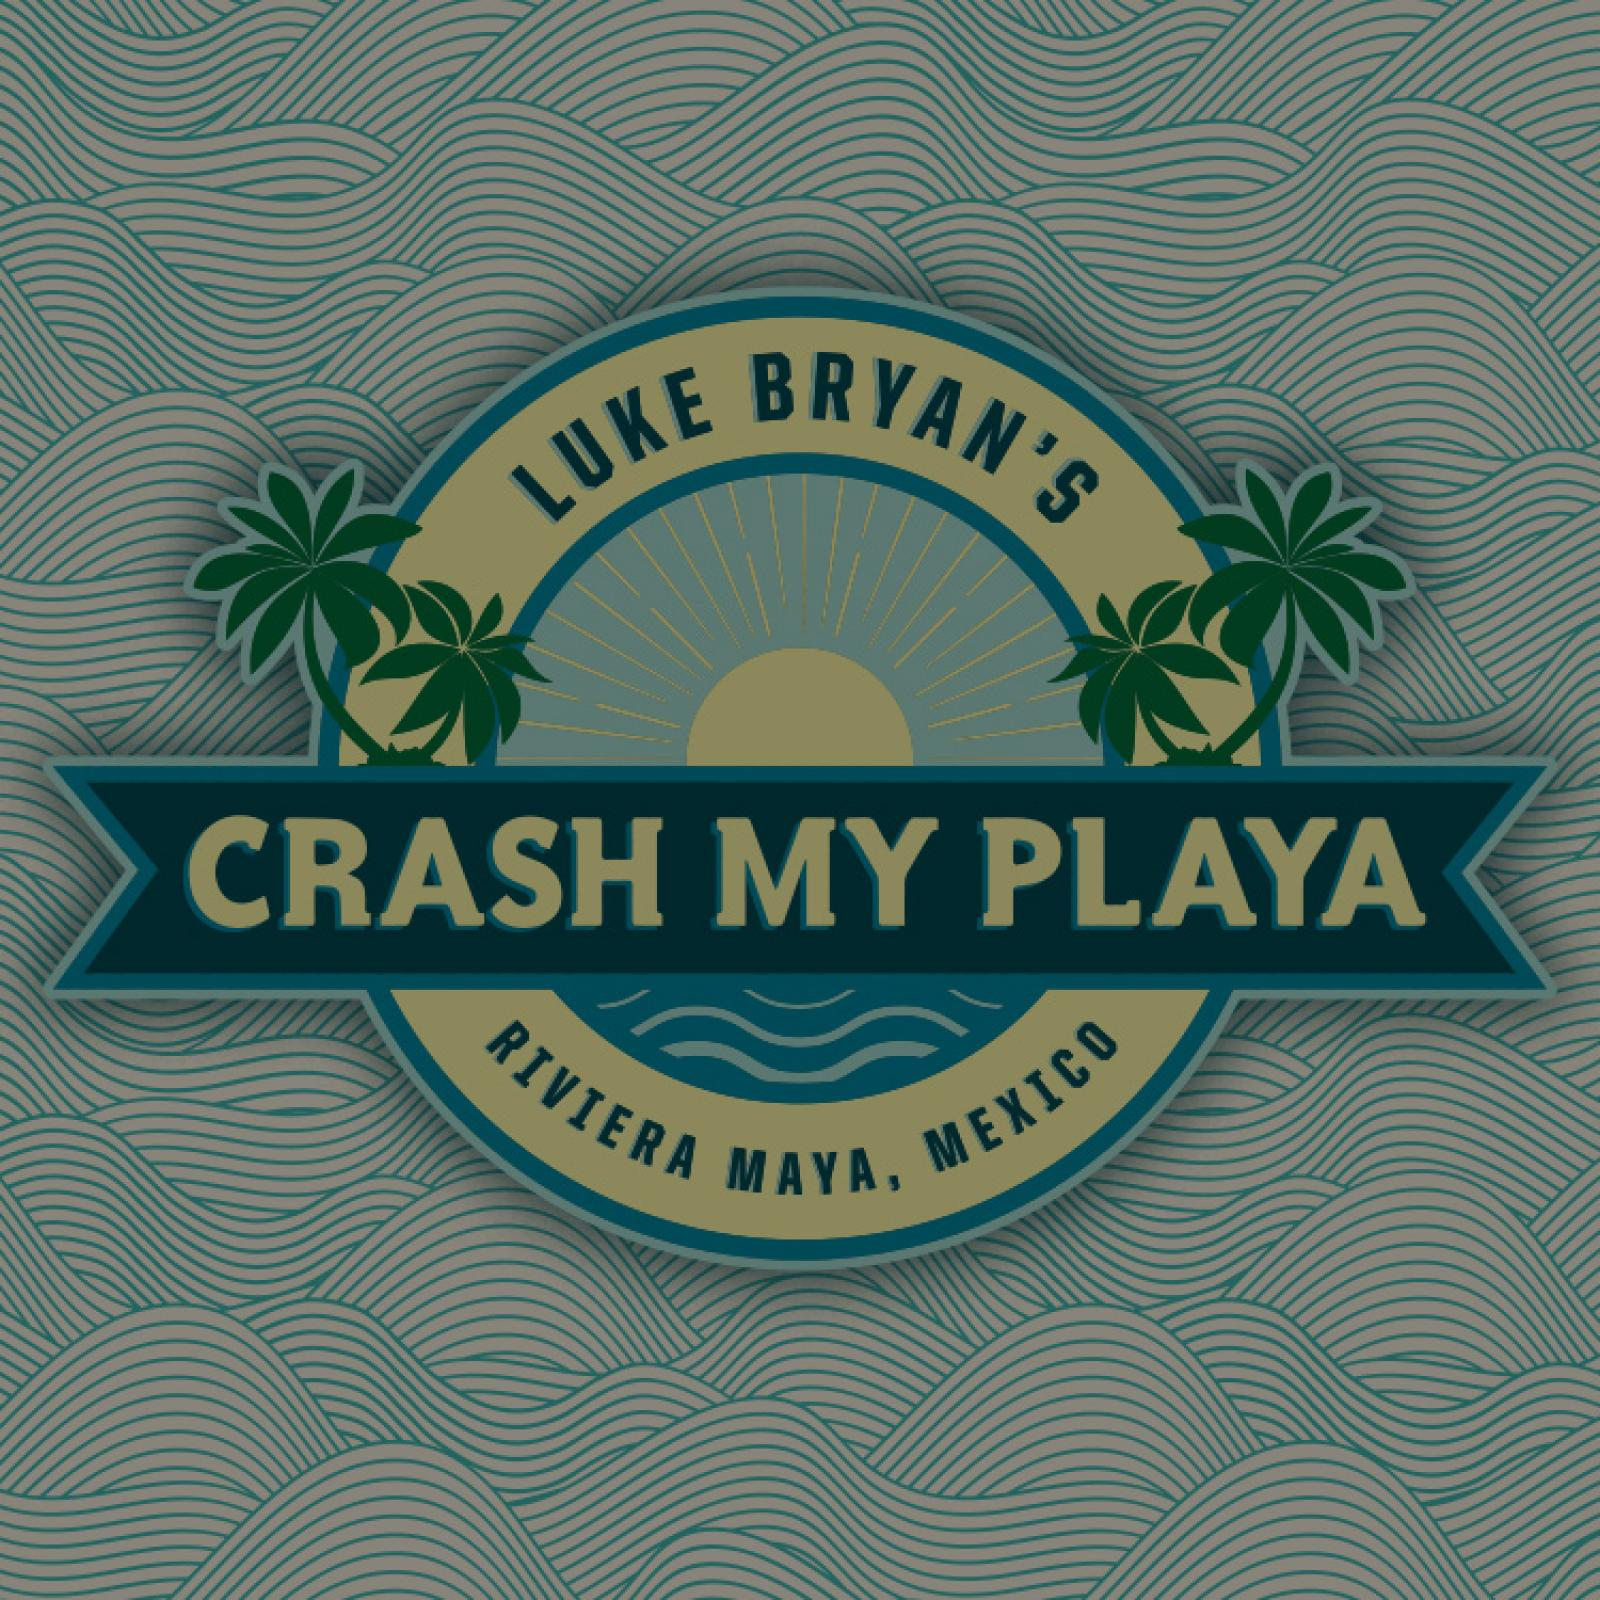 Crash My Playa 2018 - On Sale Now!